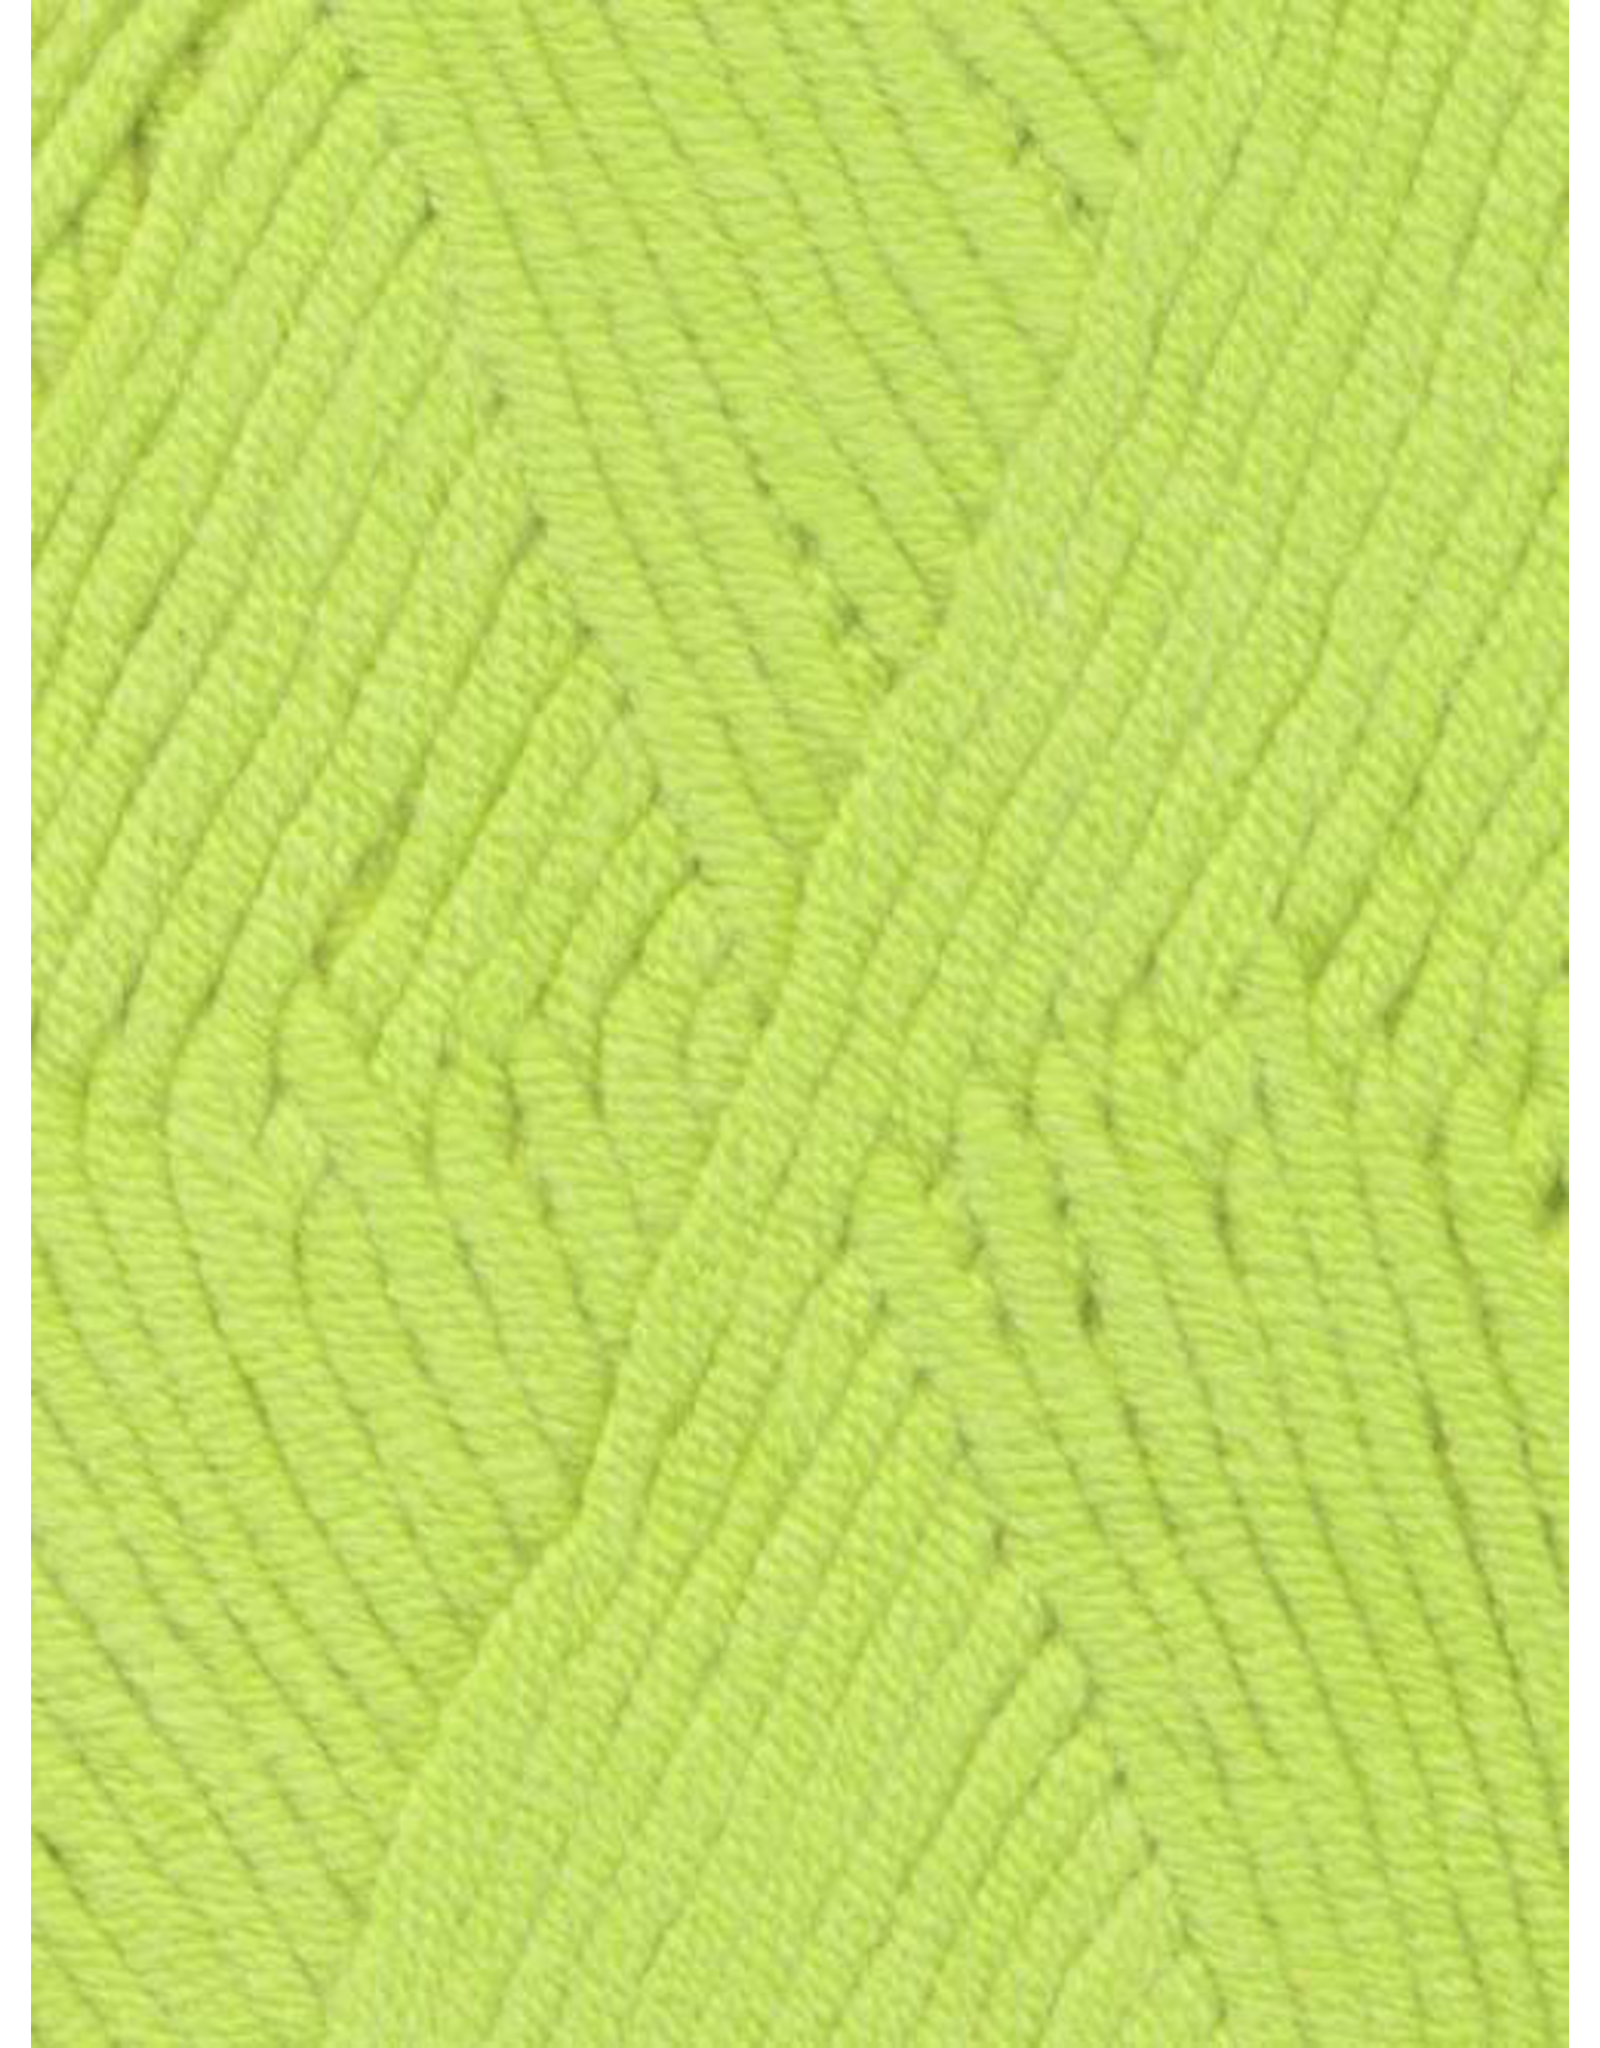 Euro Baby Babe Softcotton Chunky in Limelight